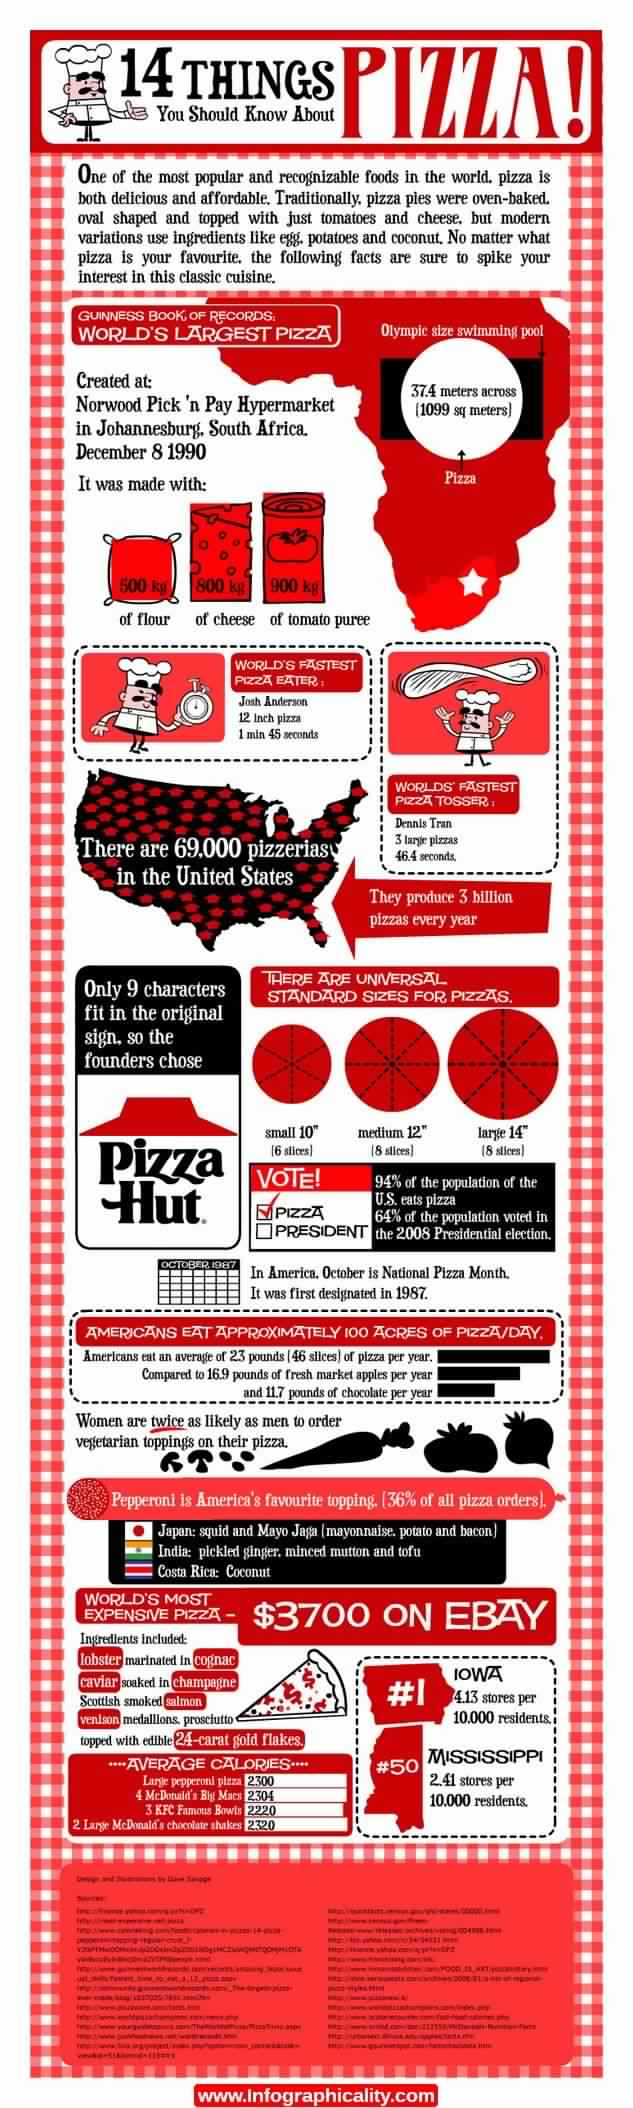 Infographic : 14 Pizza Facts That You Should Know